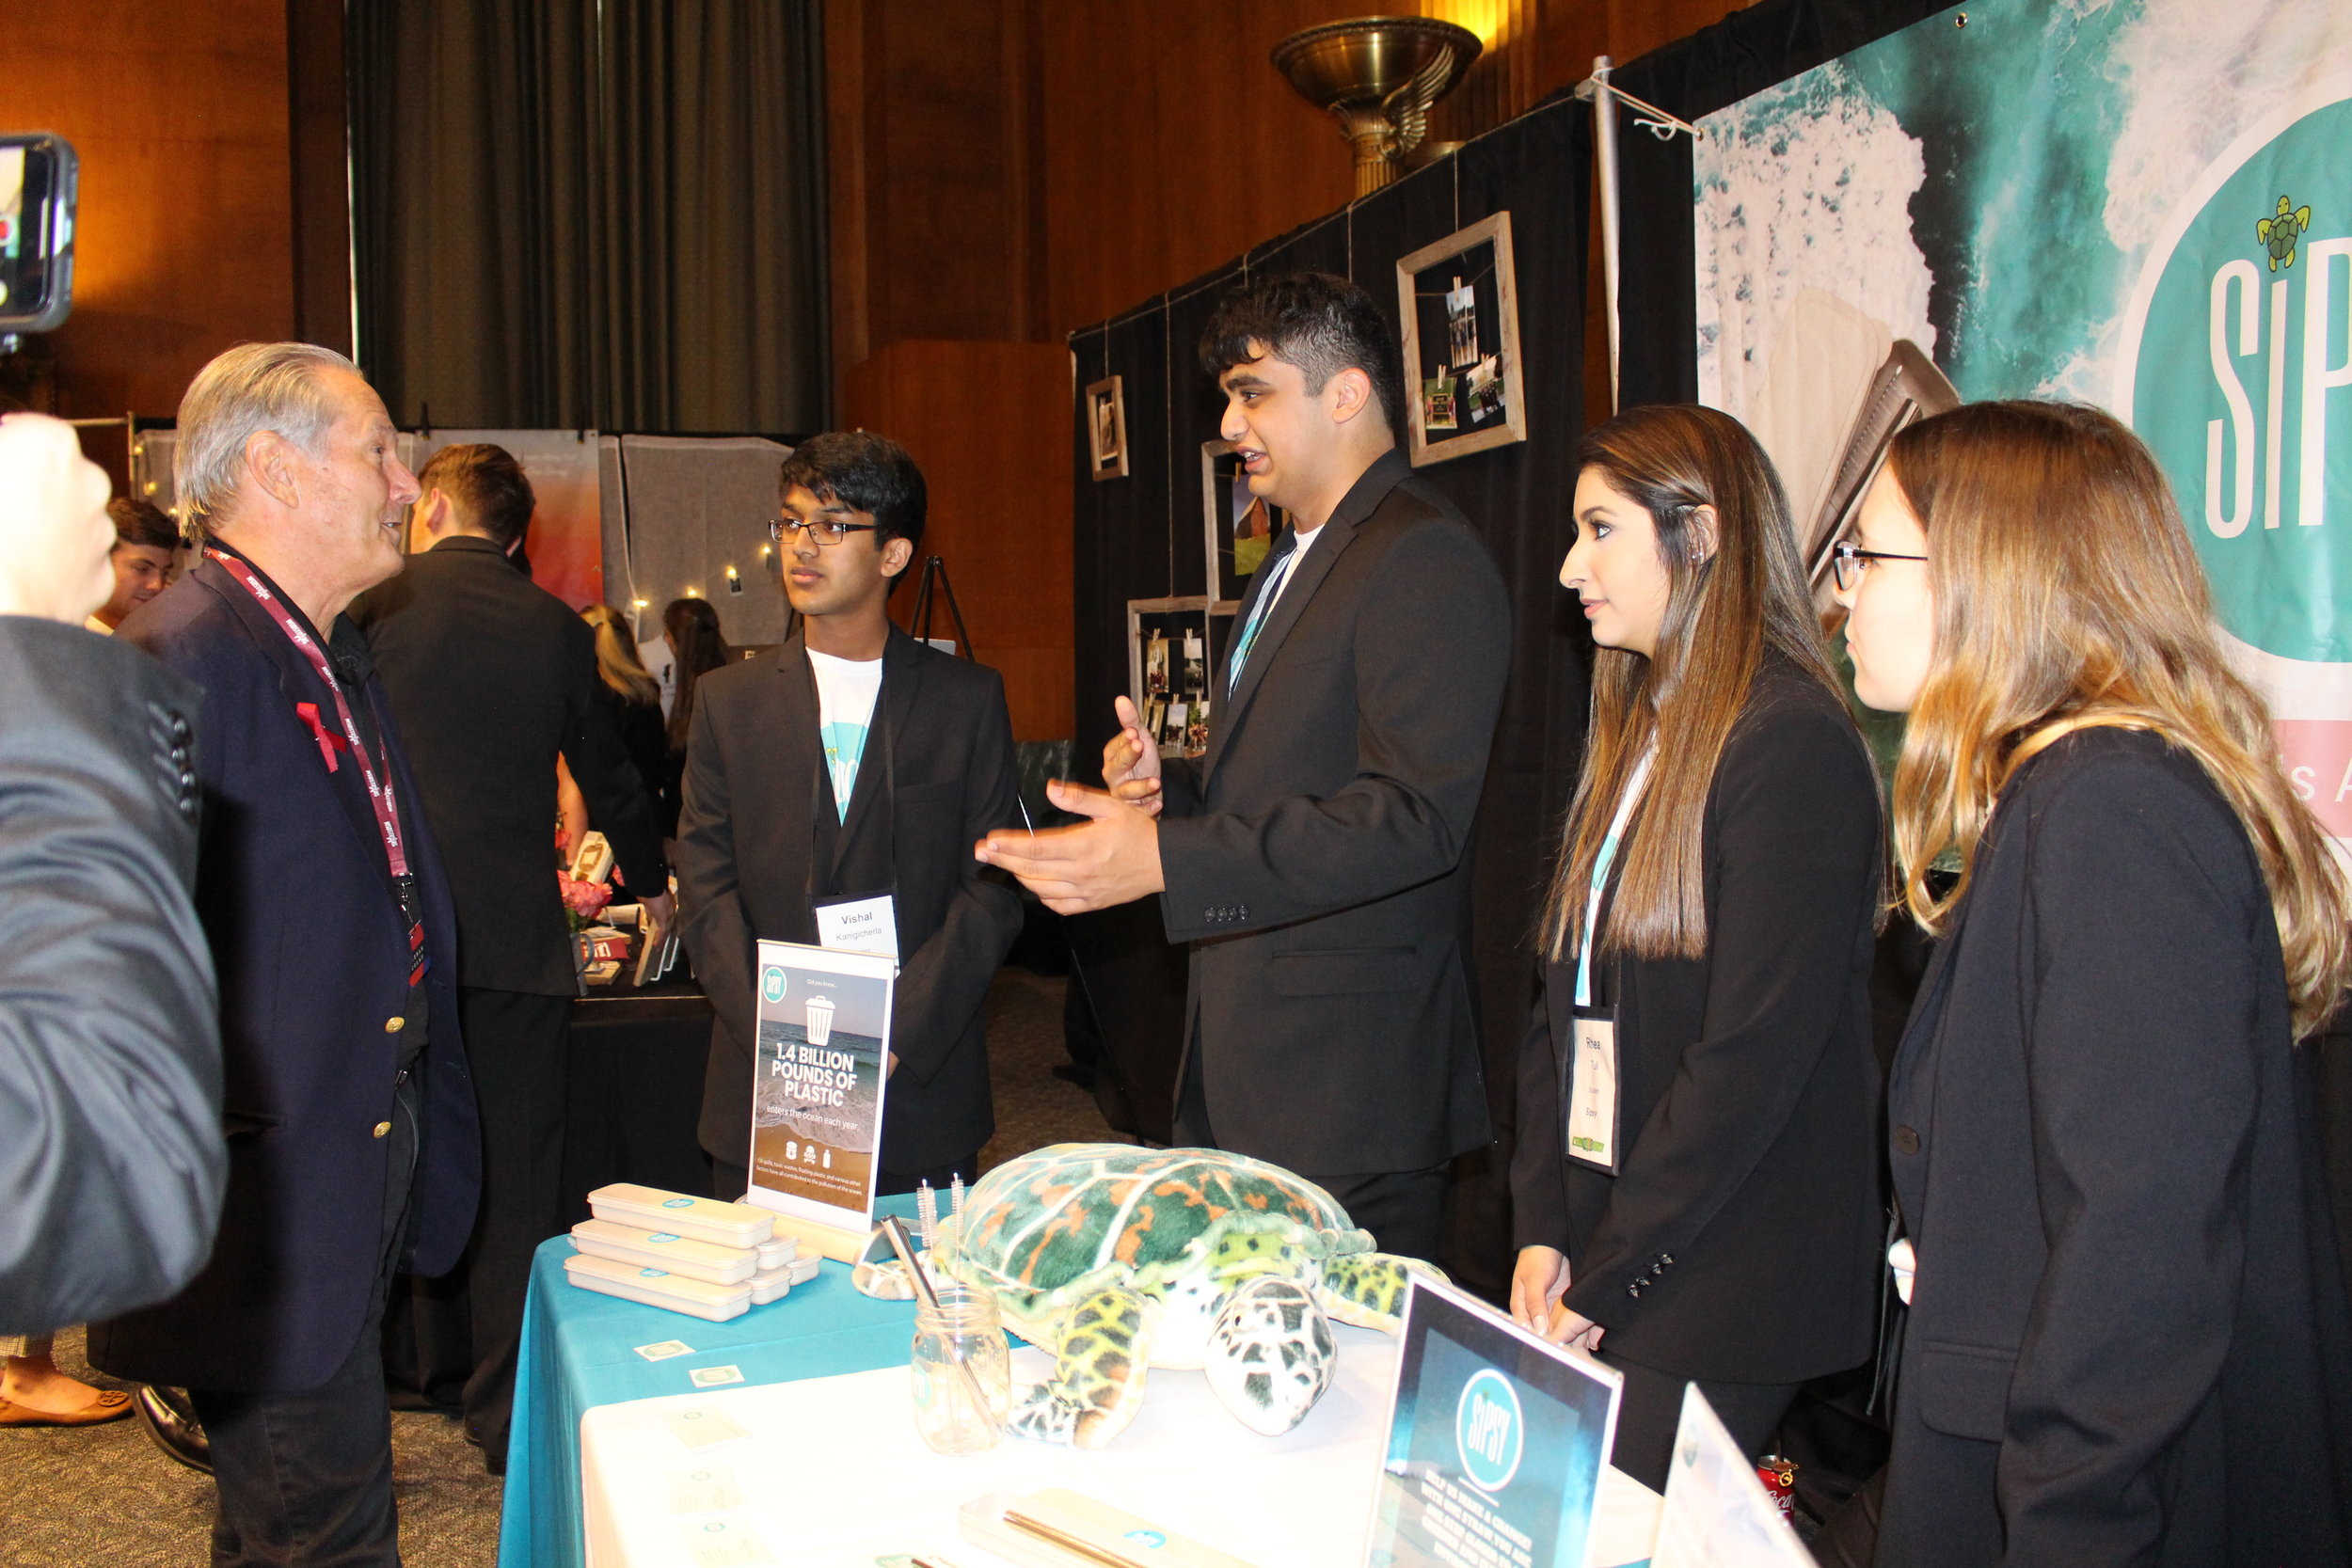 Team Sispy demonstrates their product at the Student Expo in the Dirksen Senate Office Builiding, as part of NSLS.